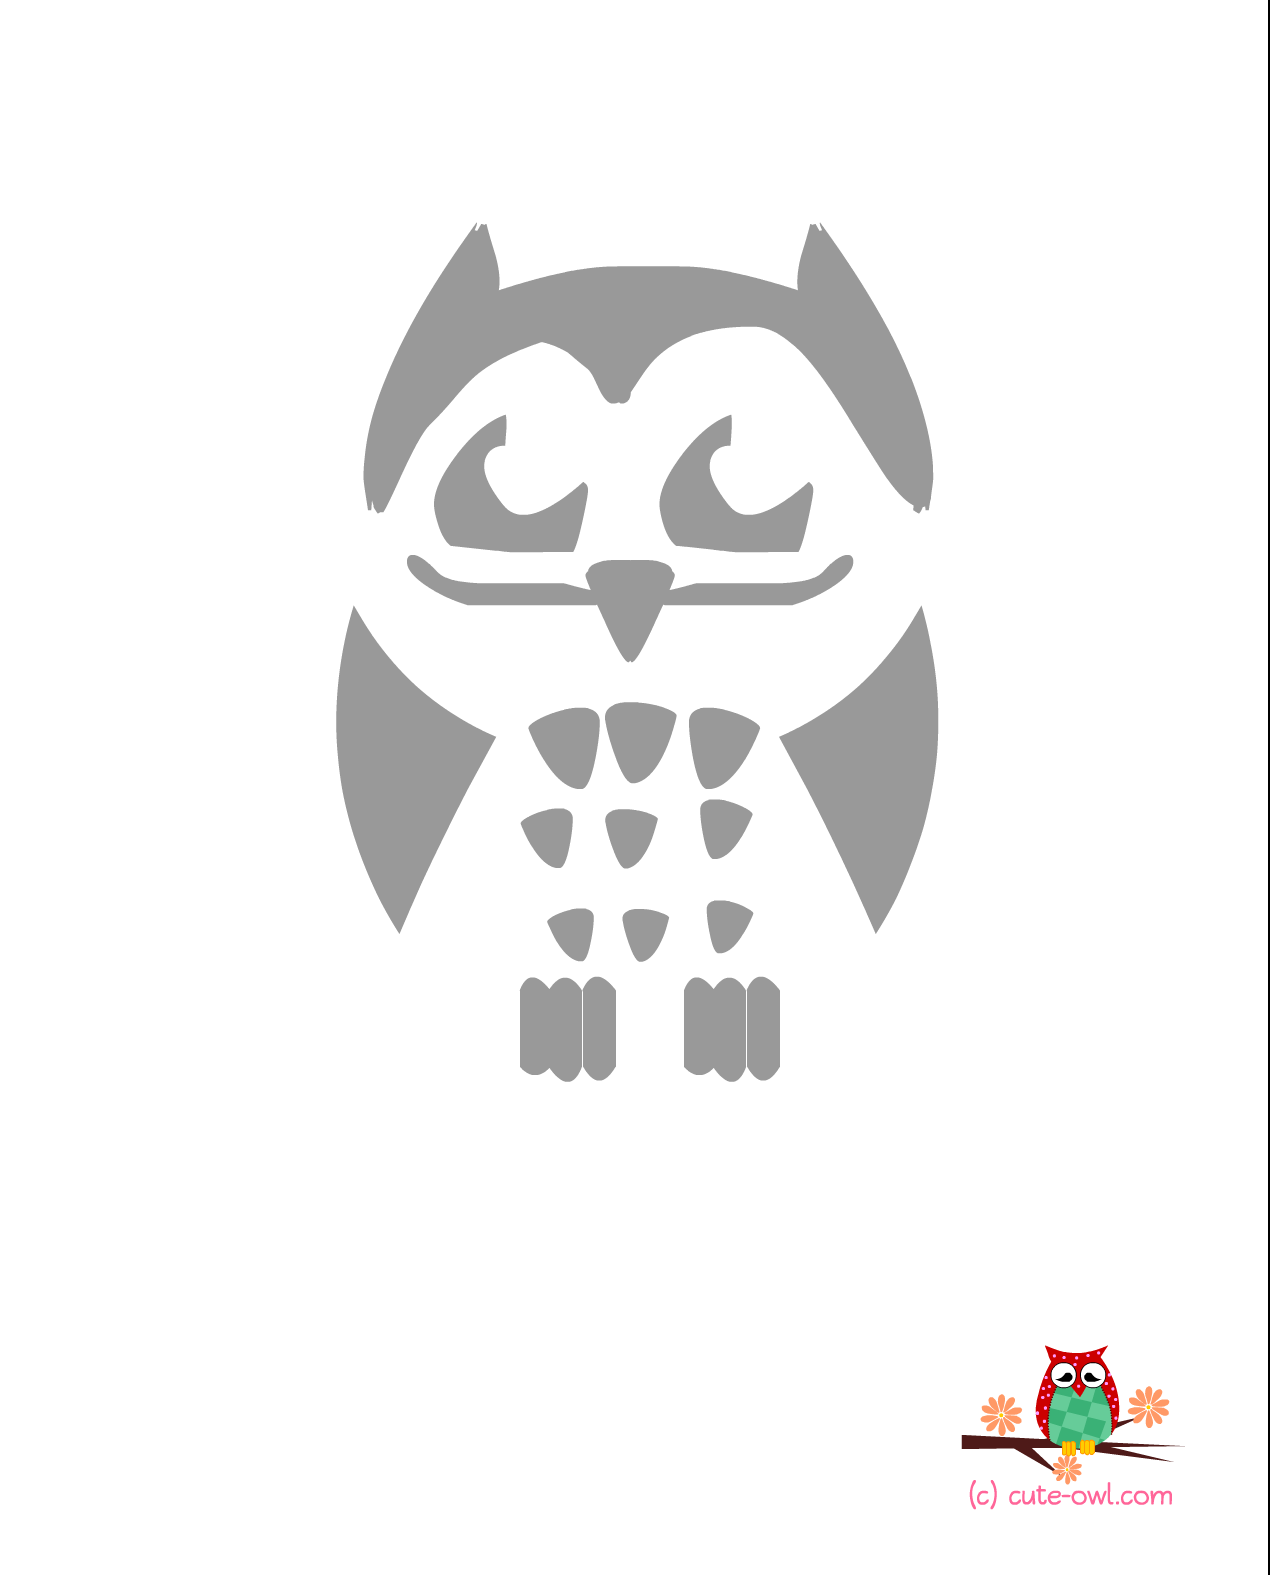 9 best images of cute printable designs rangoli designs coloring owl is cute and owl is wise owl themed parties are in great trend these days that is why i have created these free printable owl stencils for you so you amipublicfo Gallery